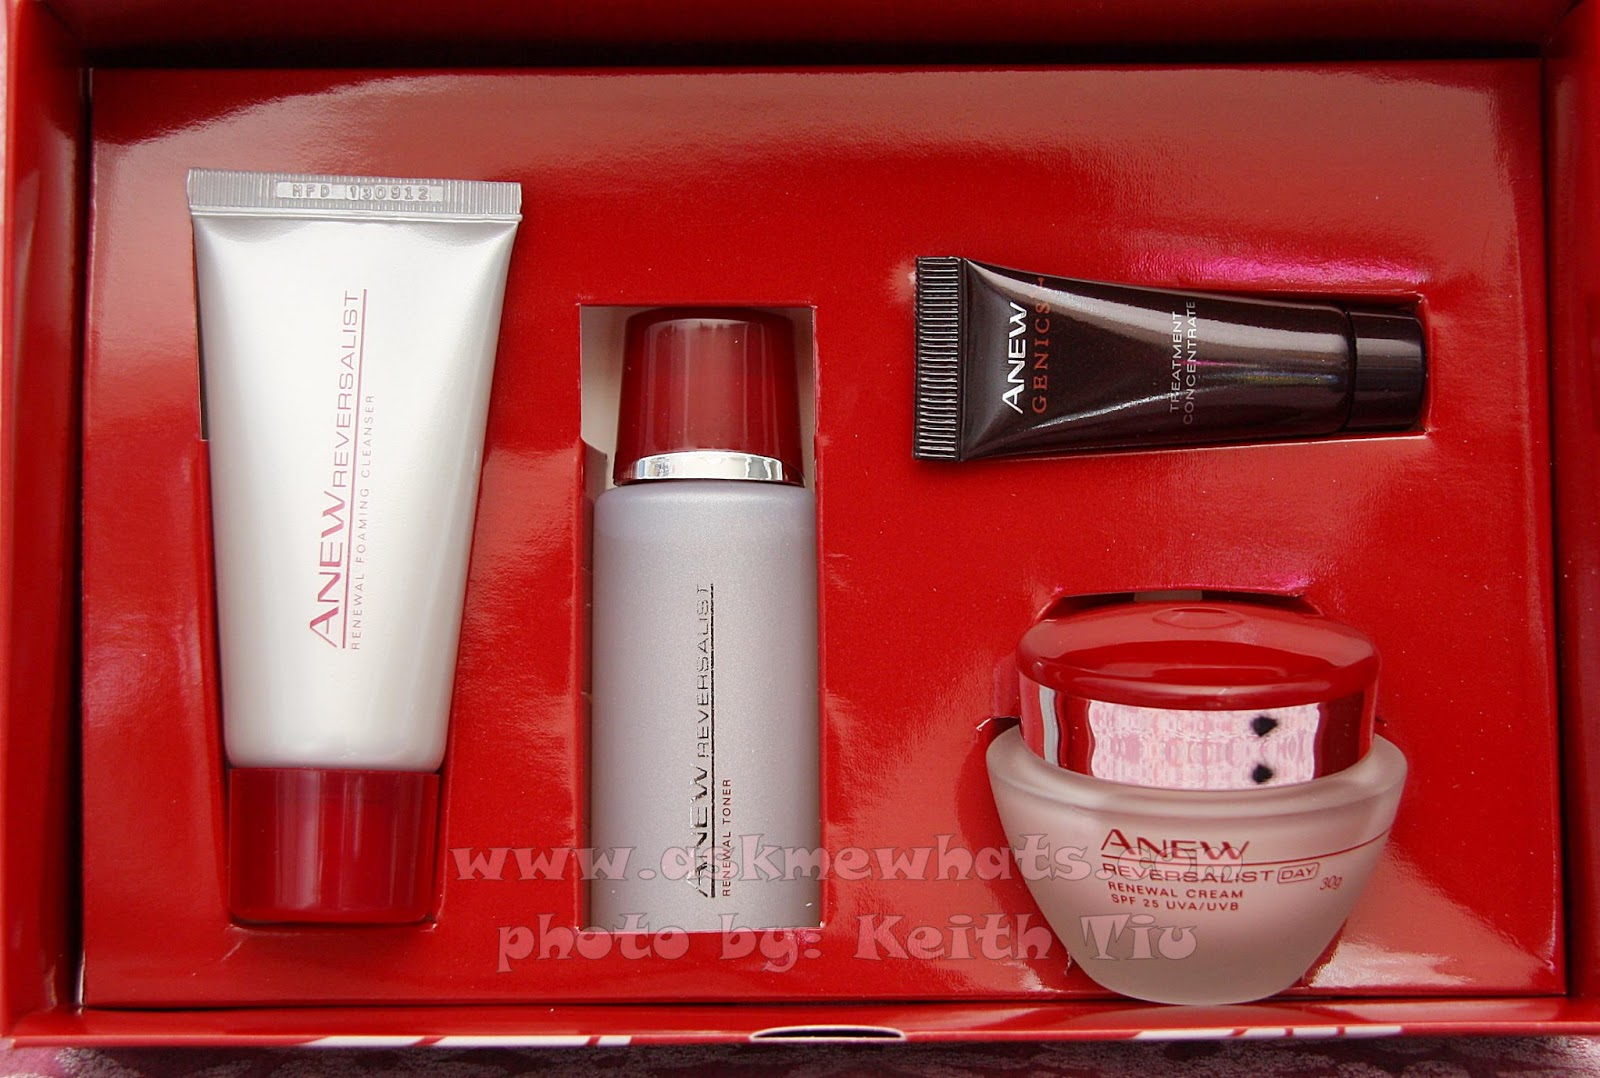 AskMeWhats - Top Beauty Blogger Philippines - Skincare Makeup Review